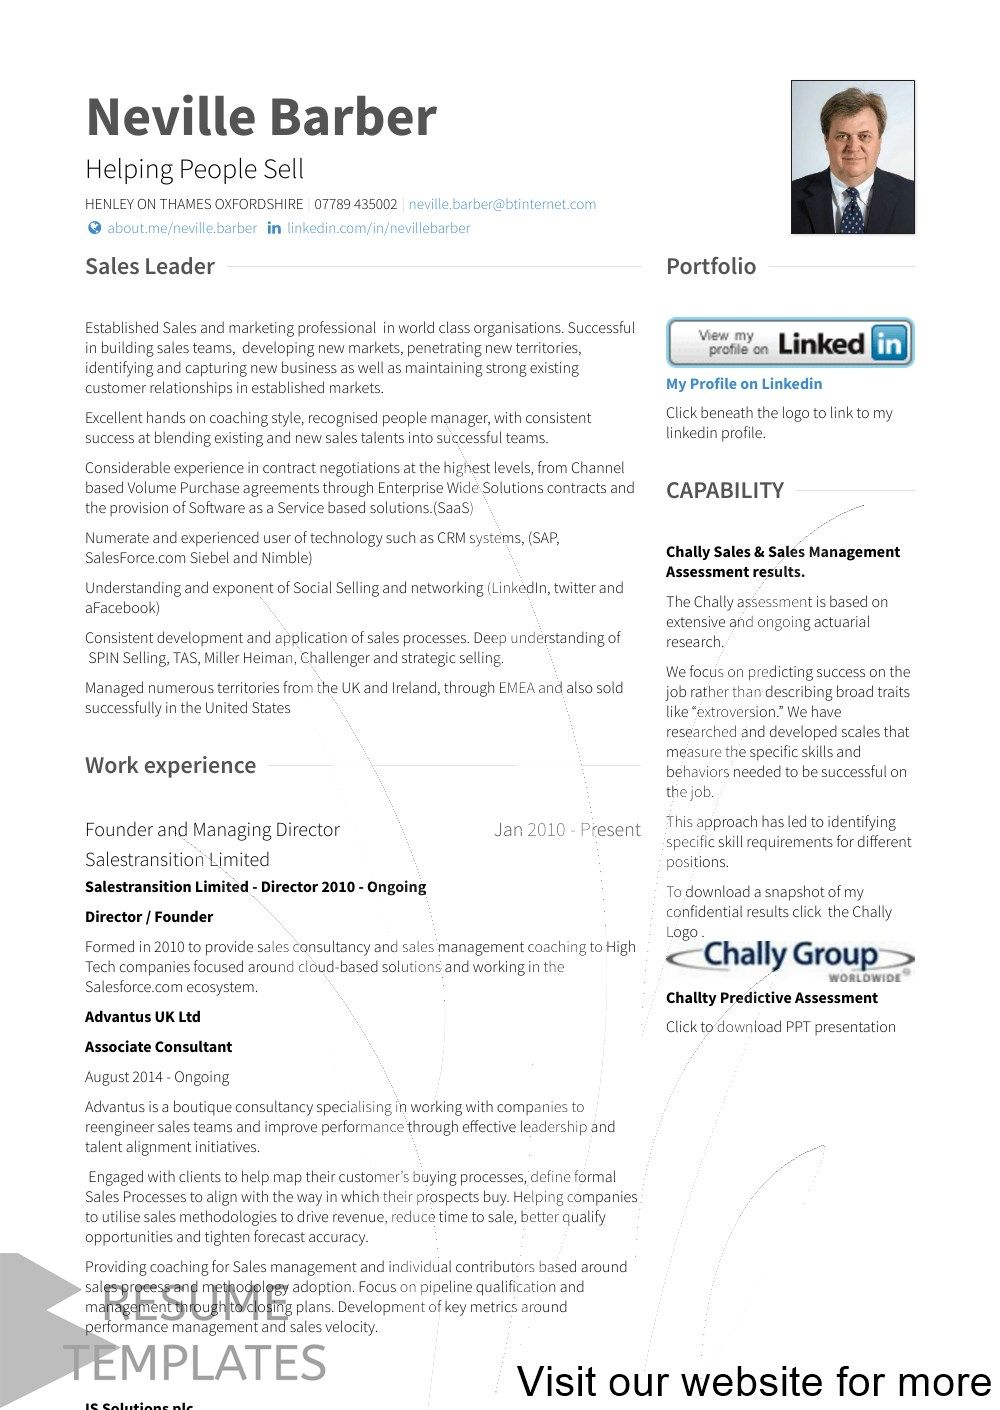 Resume Template Download For Freshers In 2020 Downloadable Resume Template Resume Cover Letter Examples Resume Template